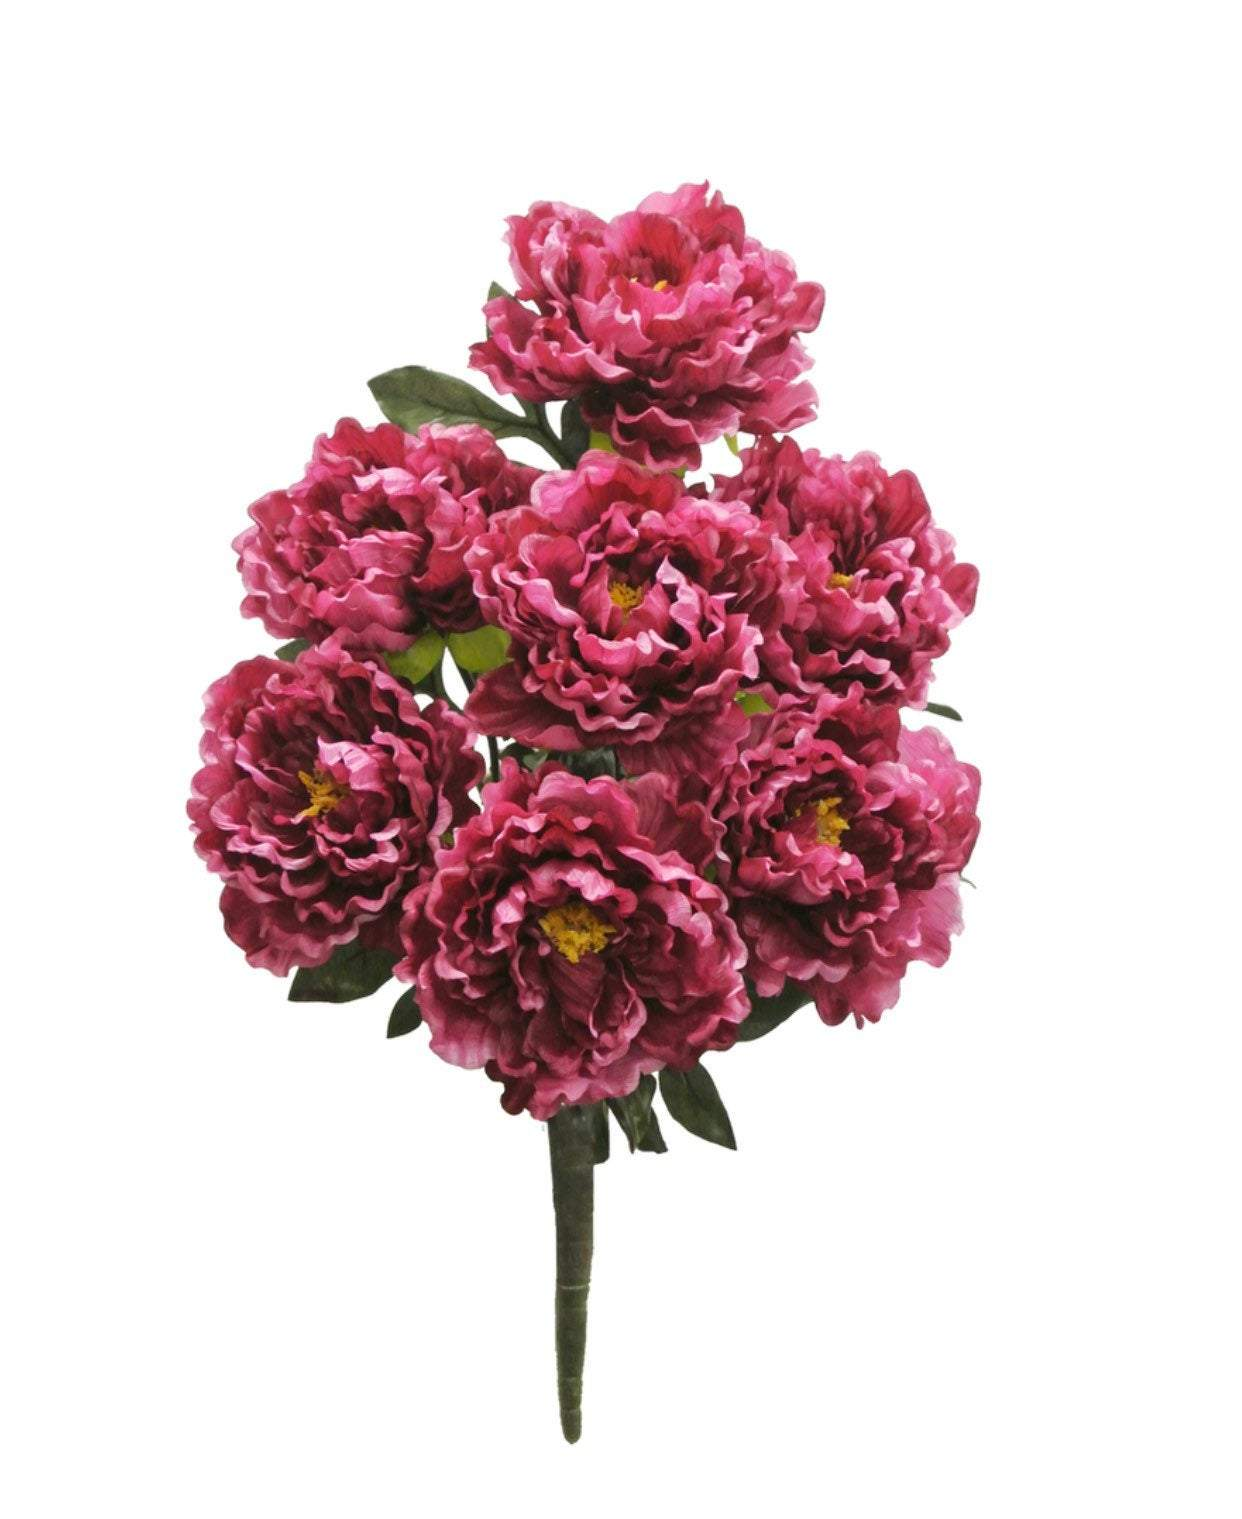 Artificial pink peonies, peony silk flower bush, spring flowers, Magenta peonies silk flowers, faux flower bush, beauty pink wedding flower,